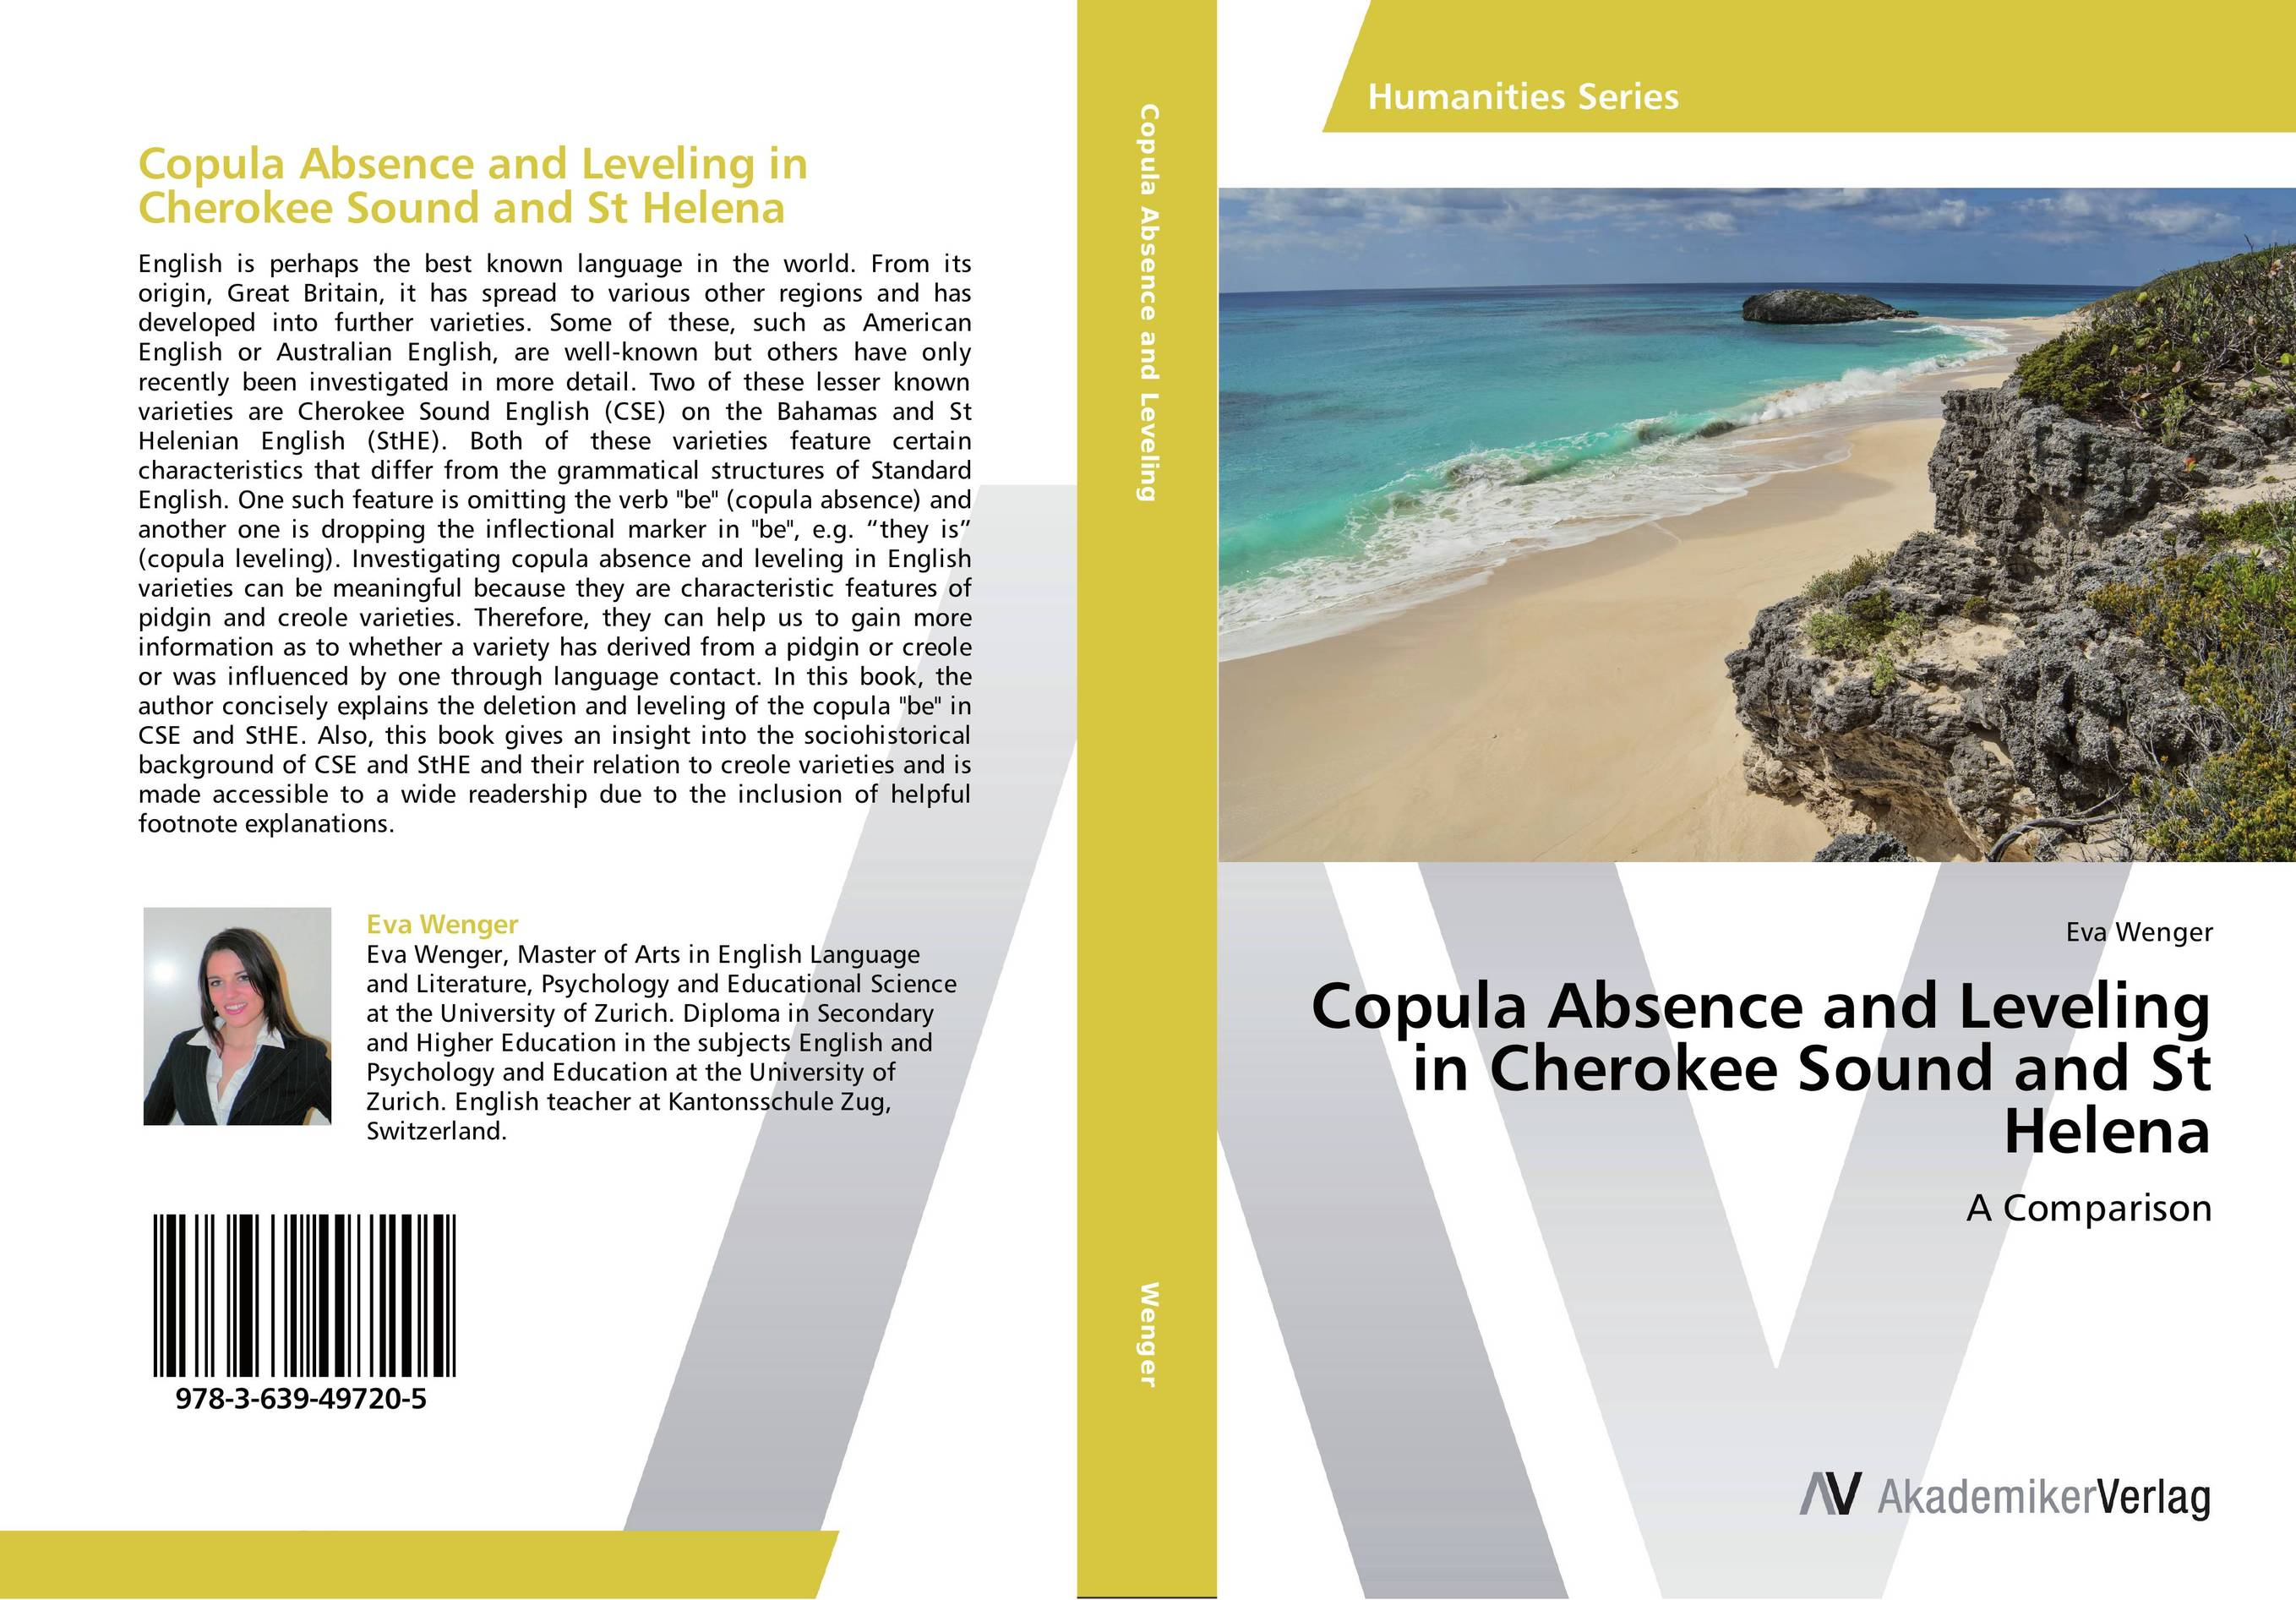 Copula Absence and Leveling in Cherokee Sound and St Helena creole